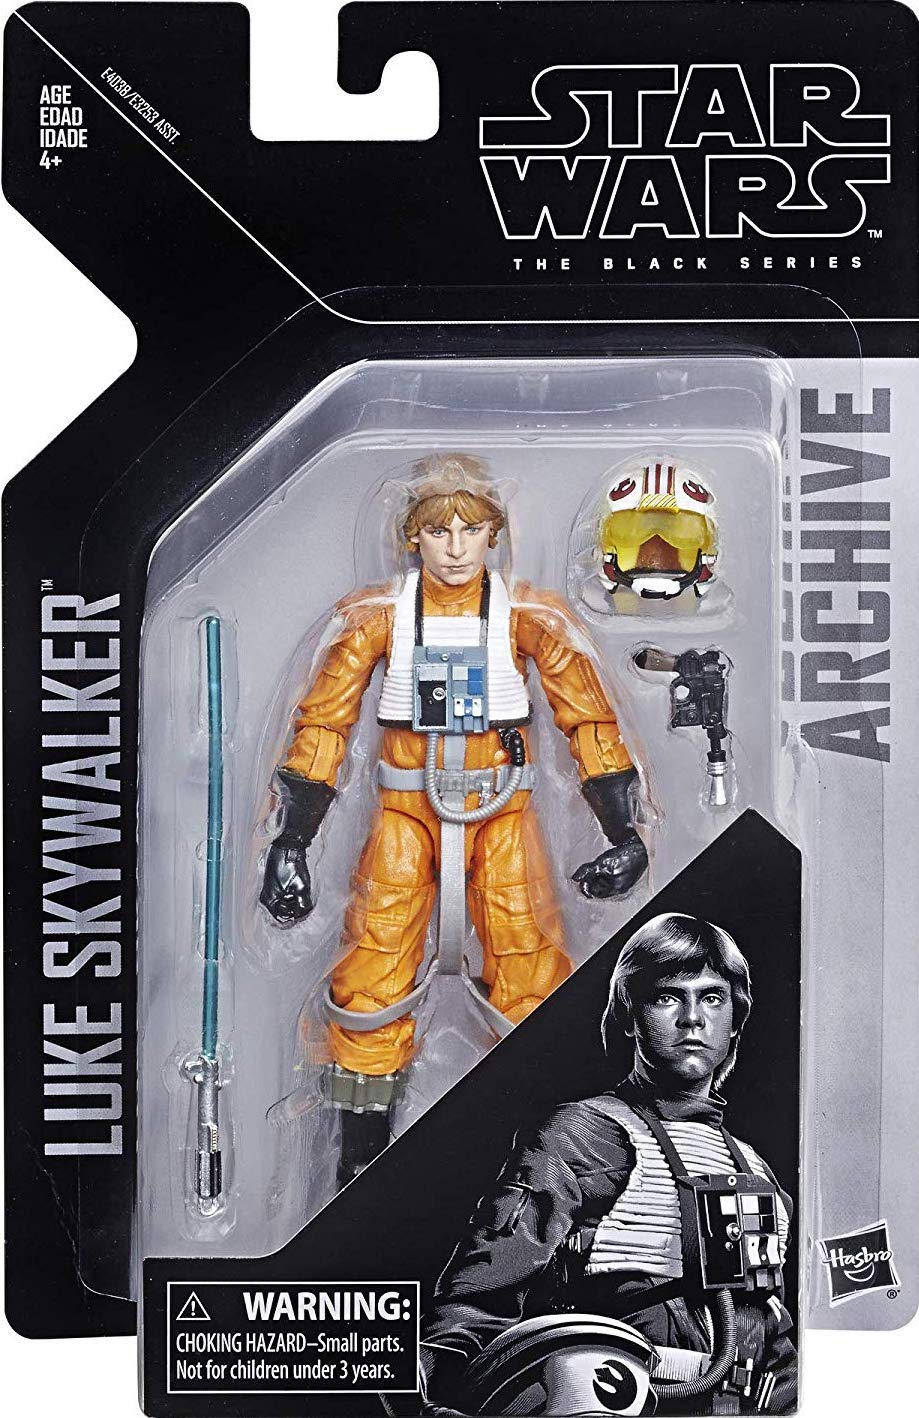 Star Wars Black Series 6 Inch Wave 1 Archive Collection Luke Skywalker In Stock!